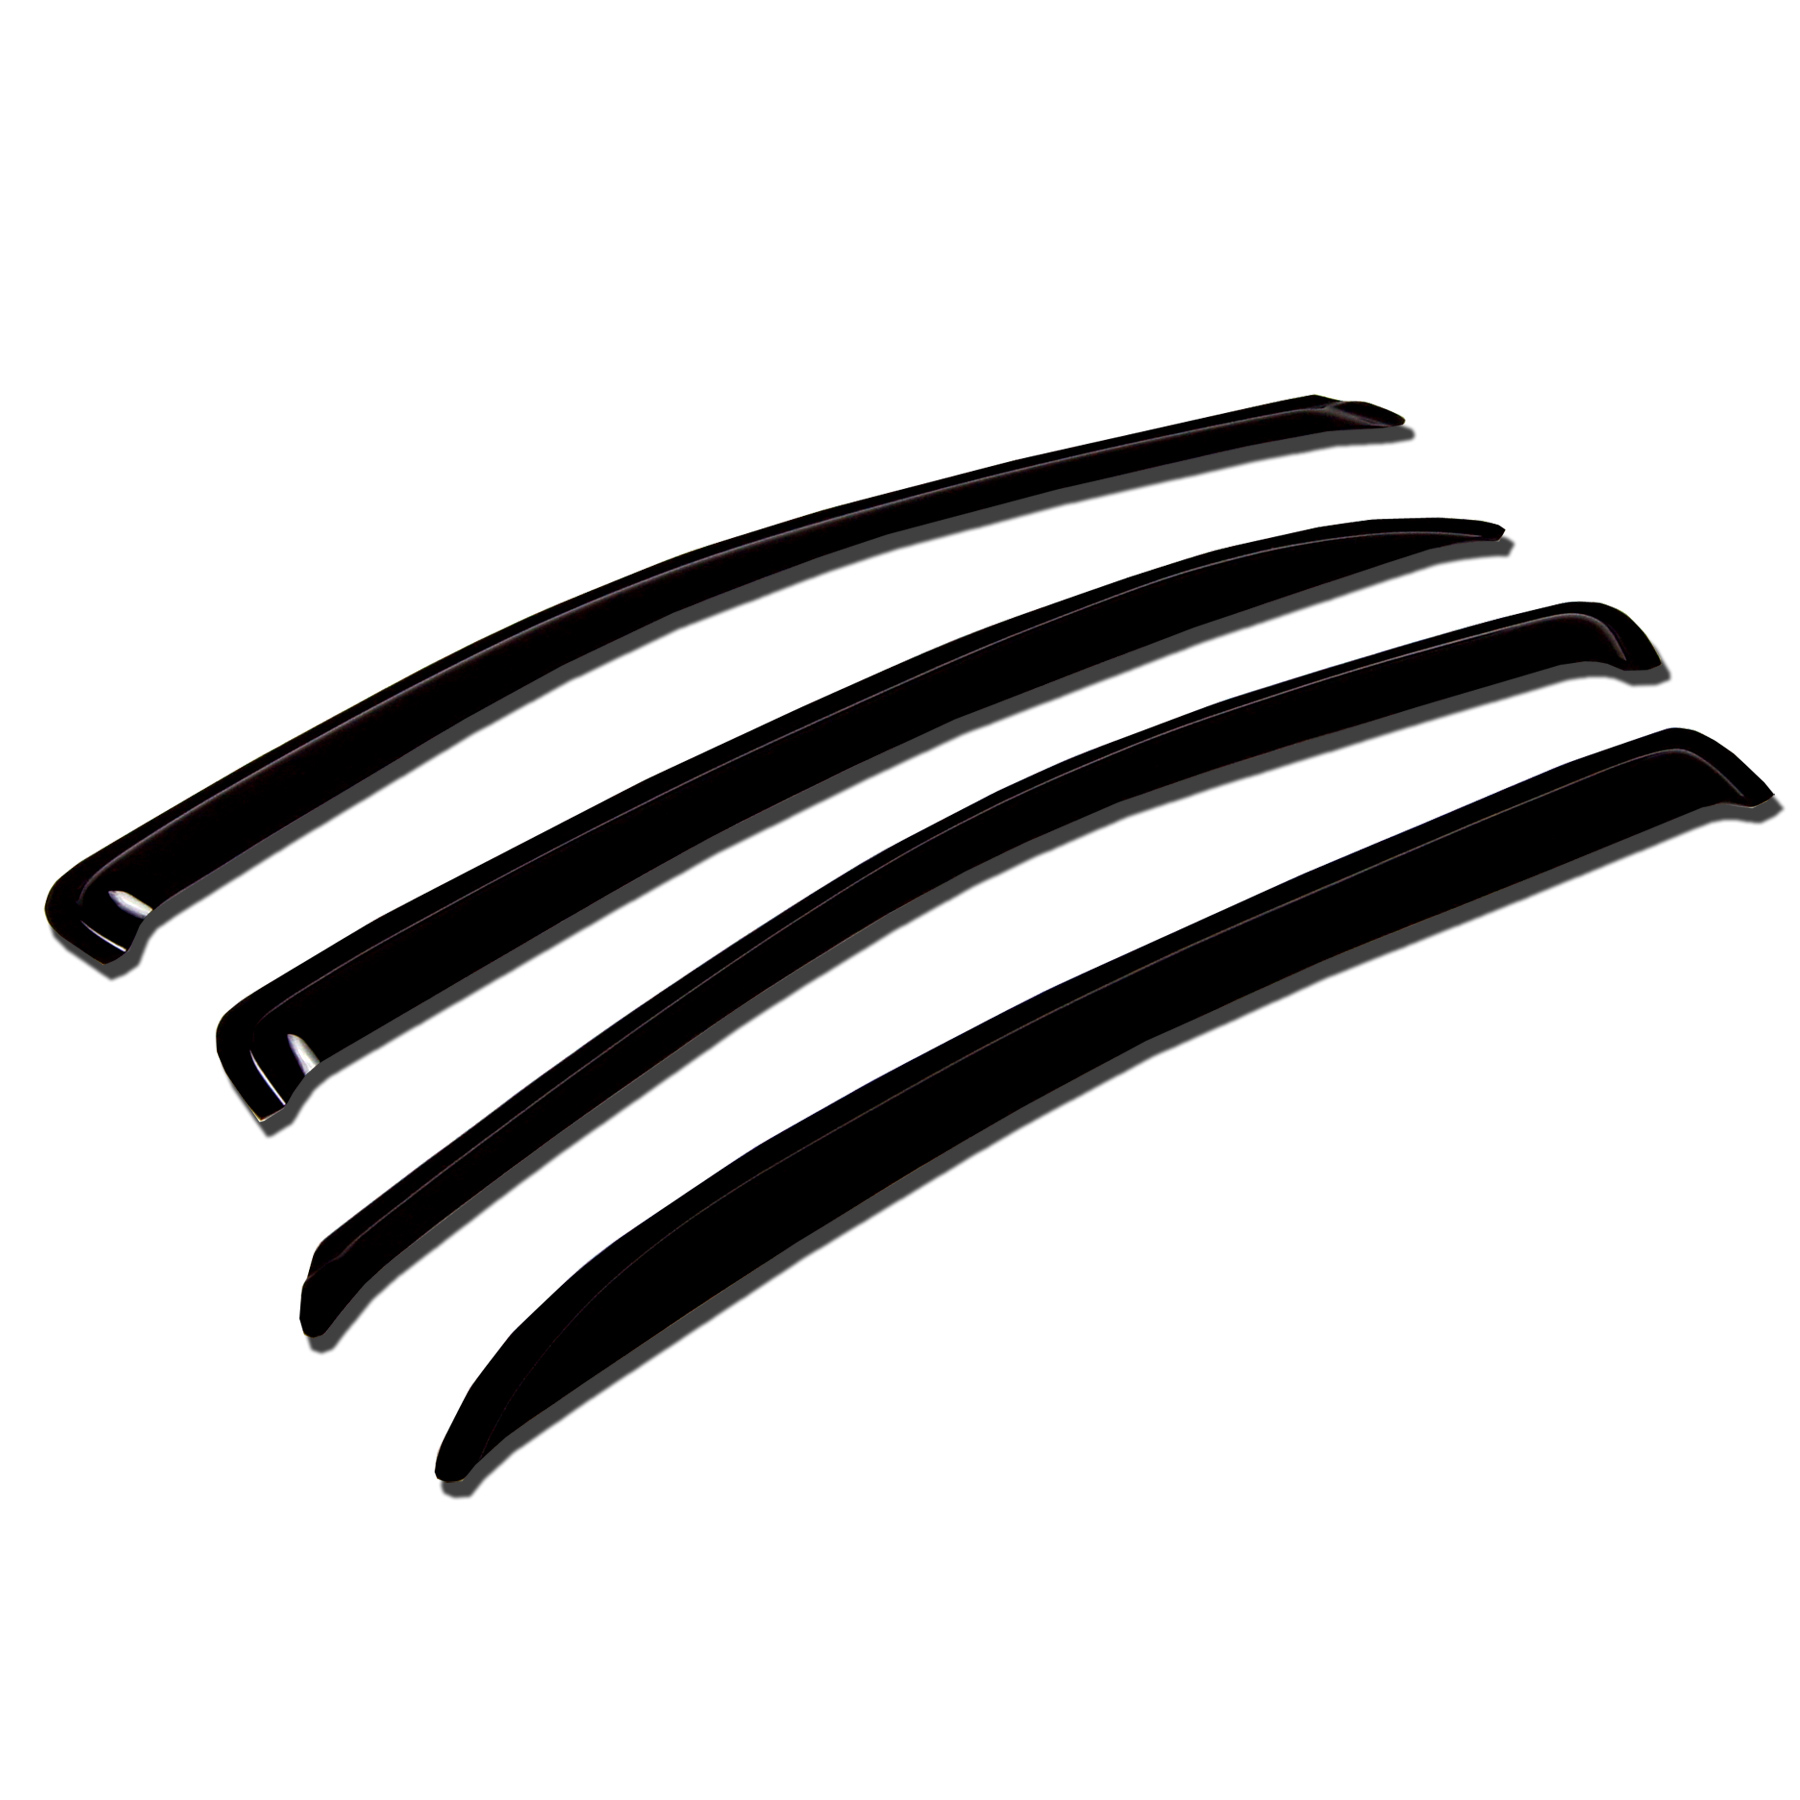 TuningPros WV-356 Window Visor For 2007-2012 Nissan Sentra - Outside Mount Deflector Rain Guard Dark Smoke 4 Pcs Set Nissan Sentra 07 08 09 10 11 12